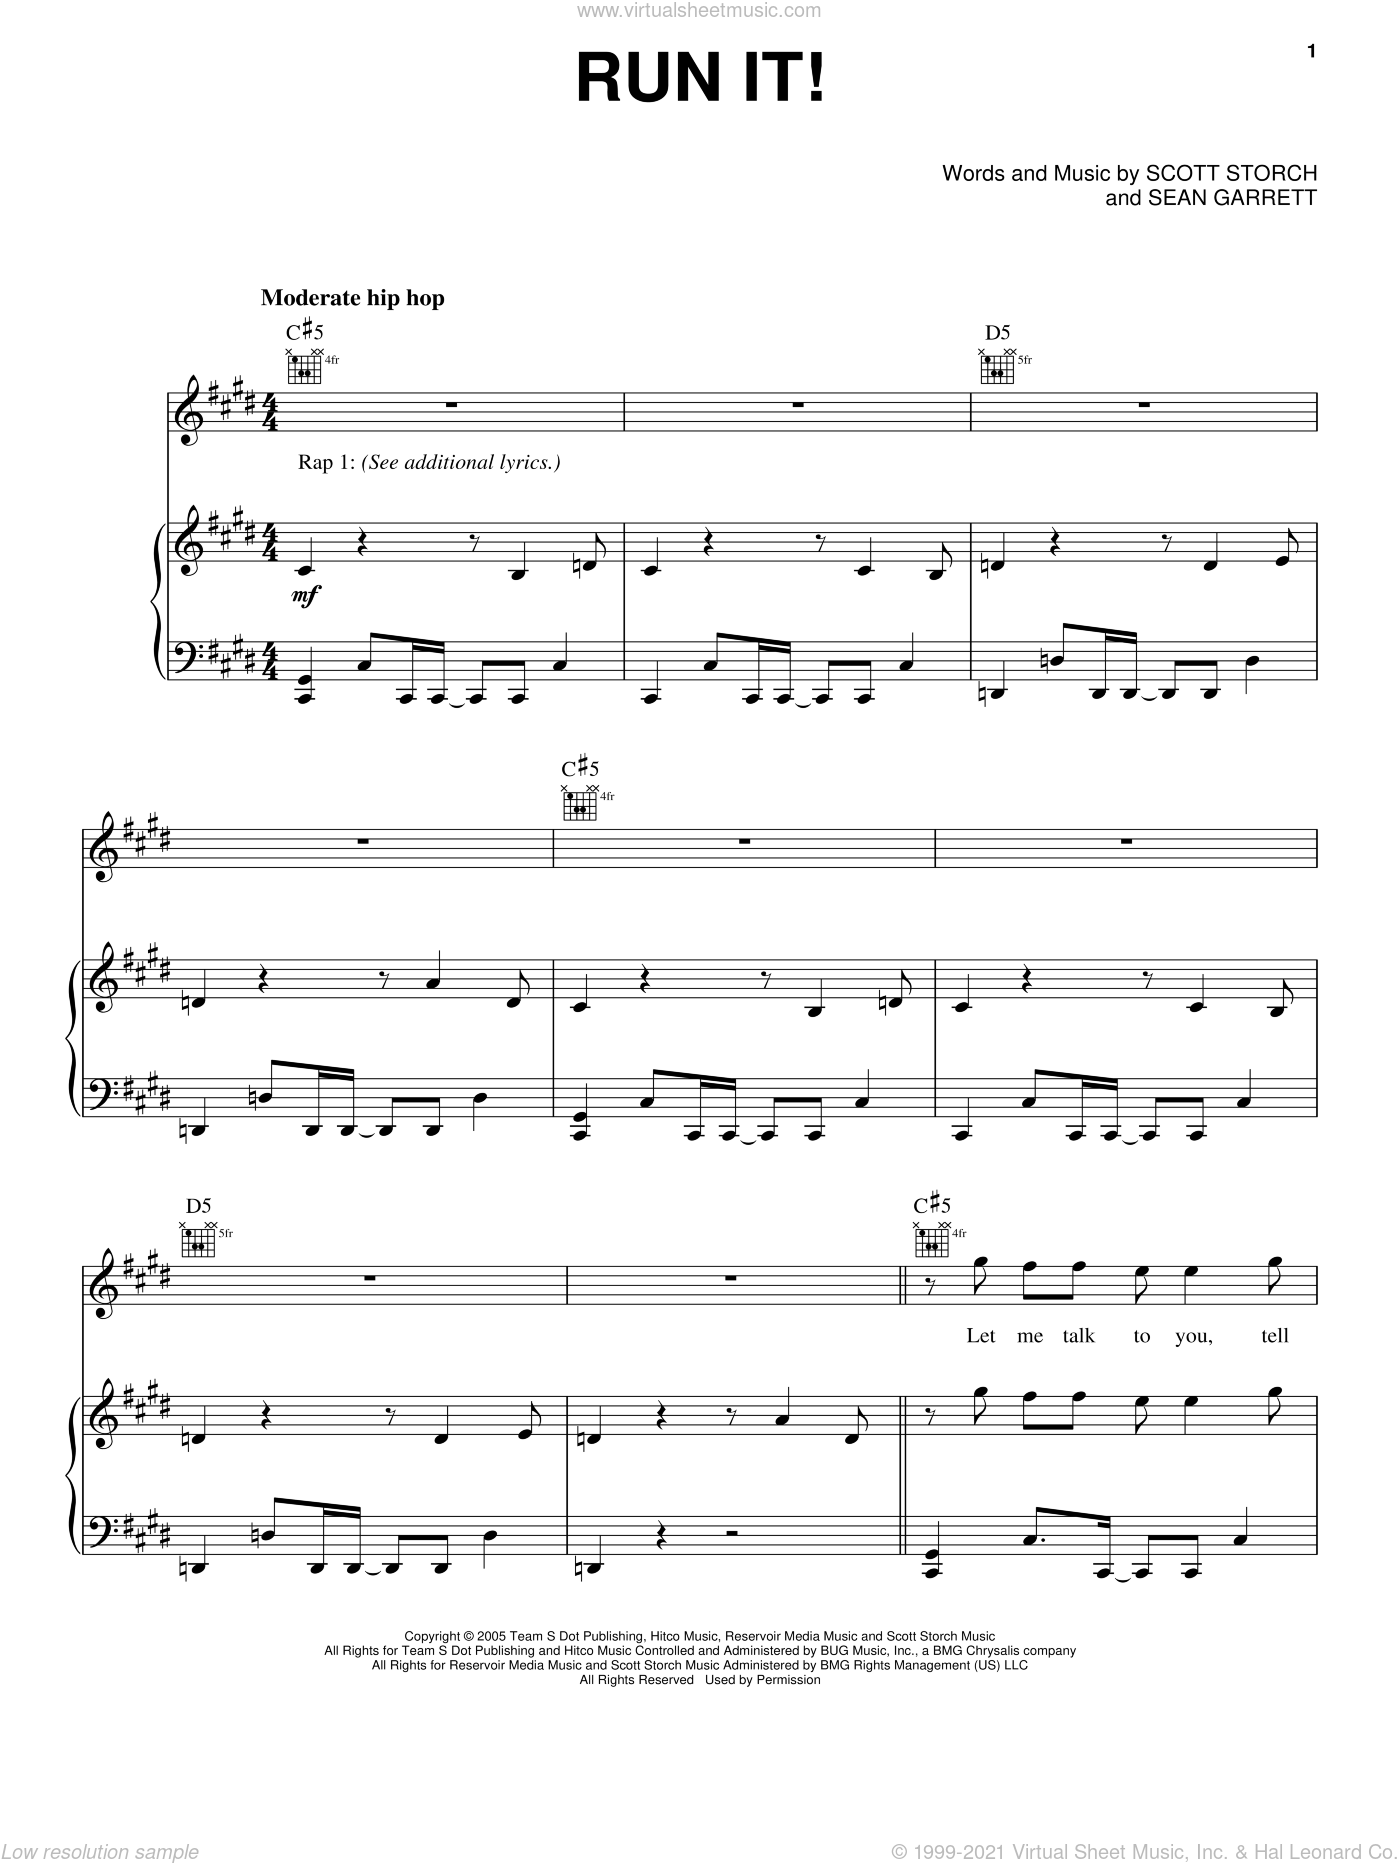 Run It! sheet music for voice, piano or guitar by Scott Storch, Chris Brown and Sean Garrett. Score Image Preview.